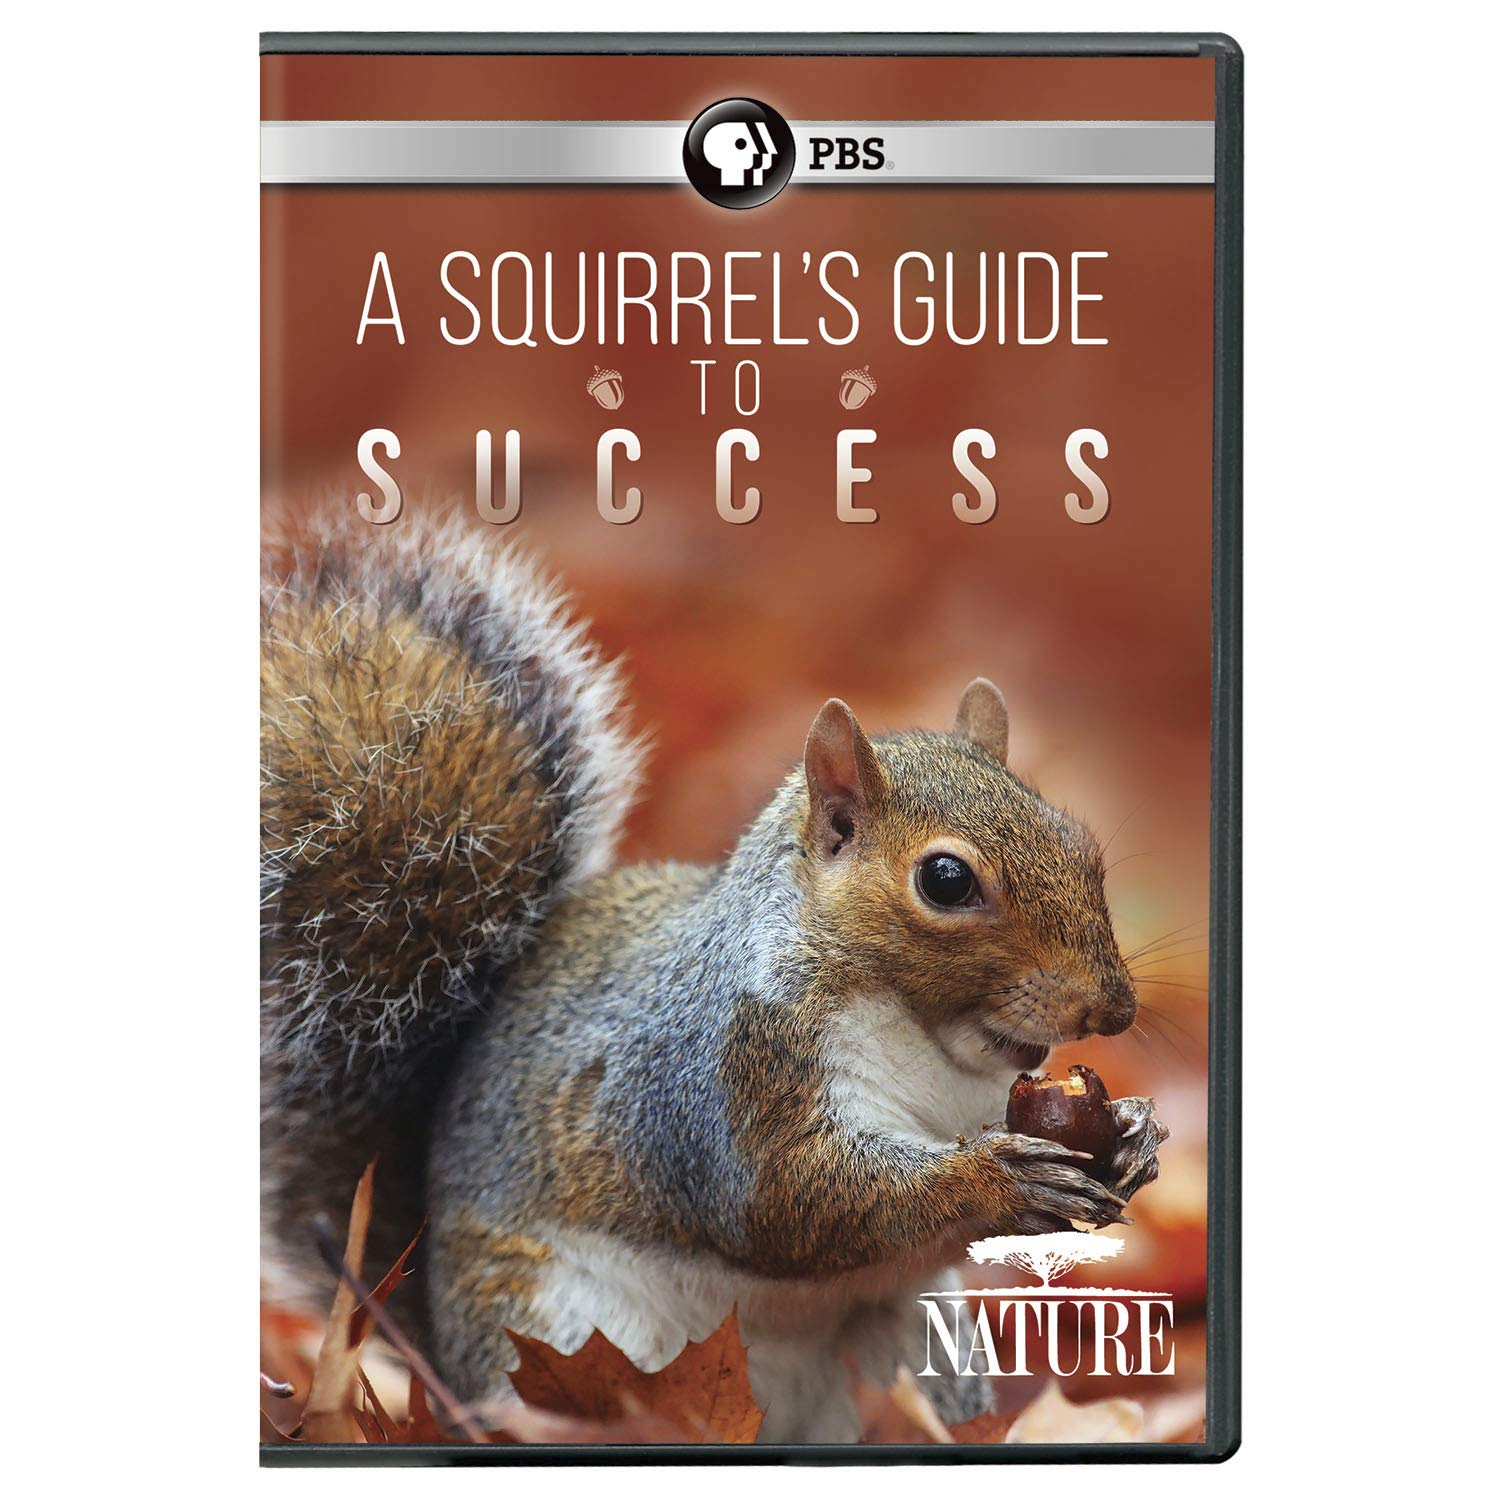 NATURE: A Squirrel's Guide to Success DVD